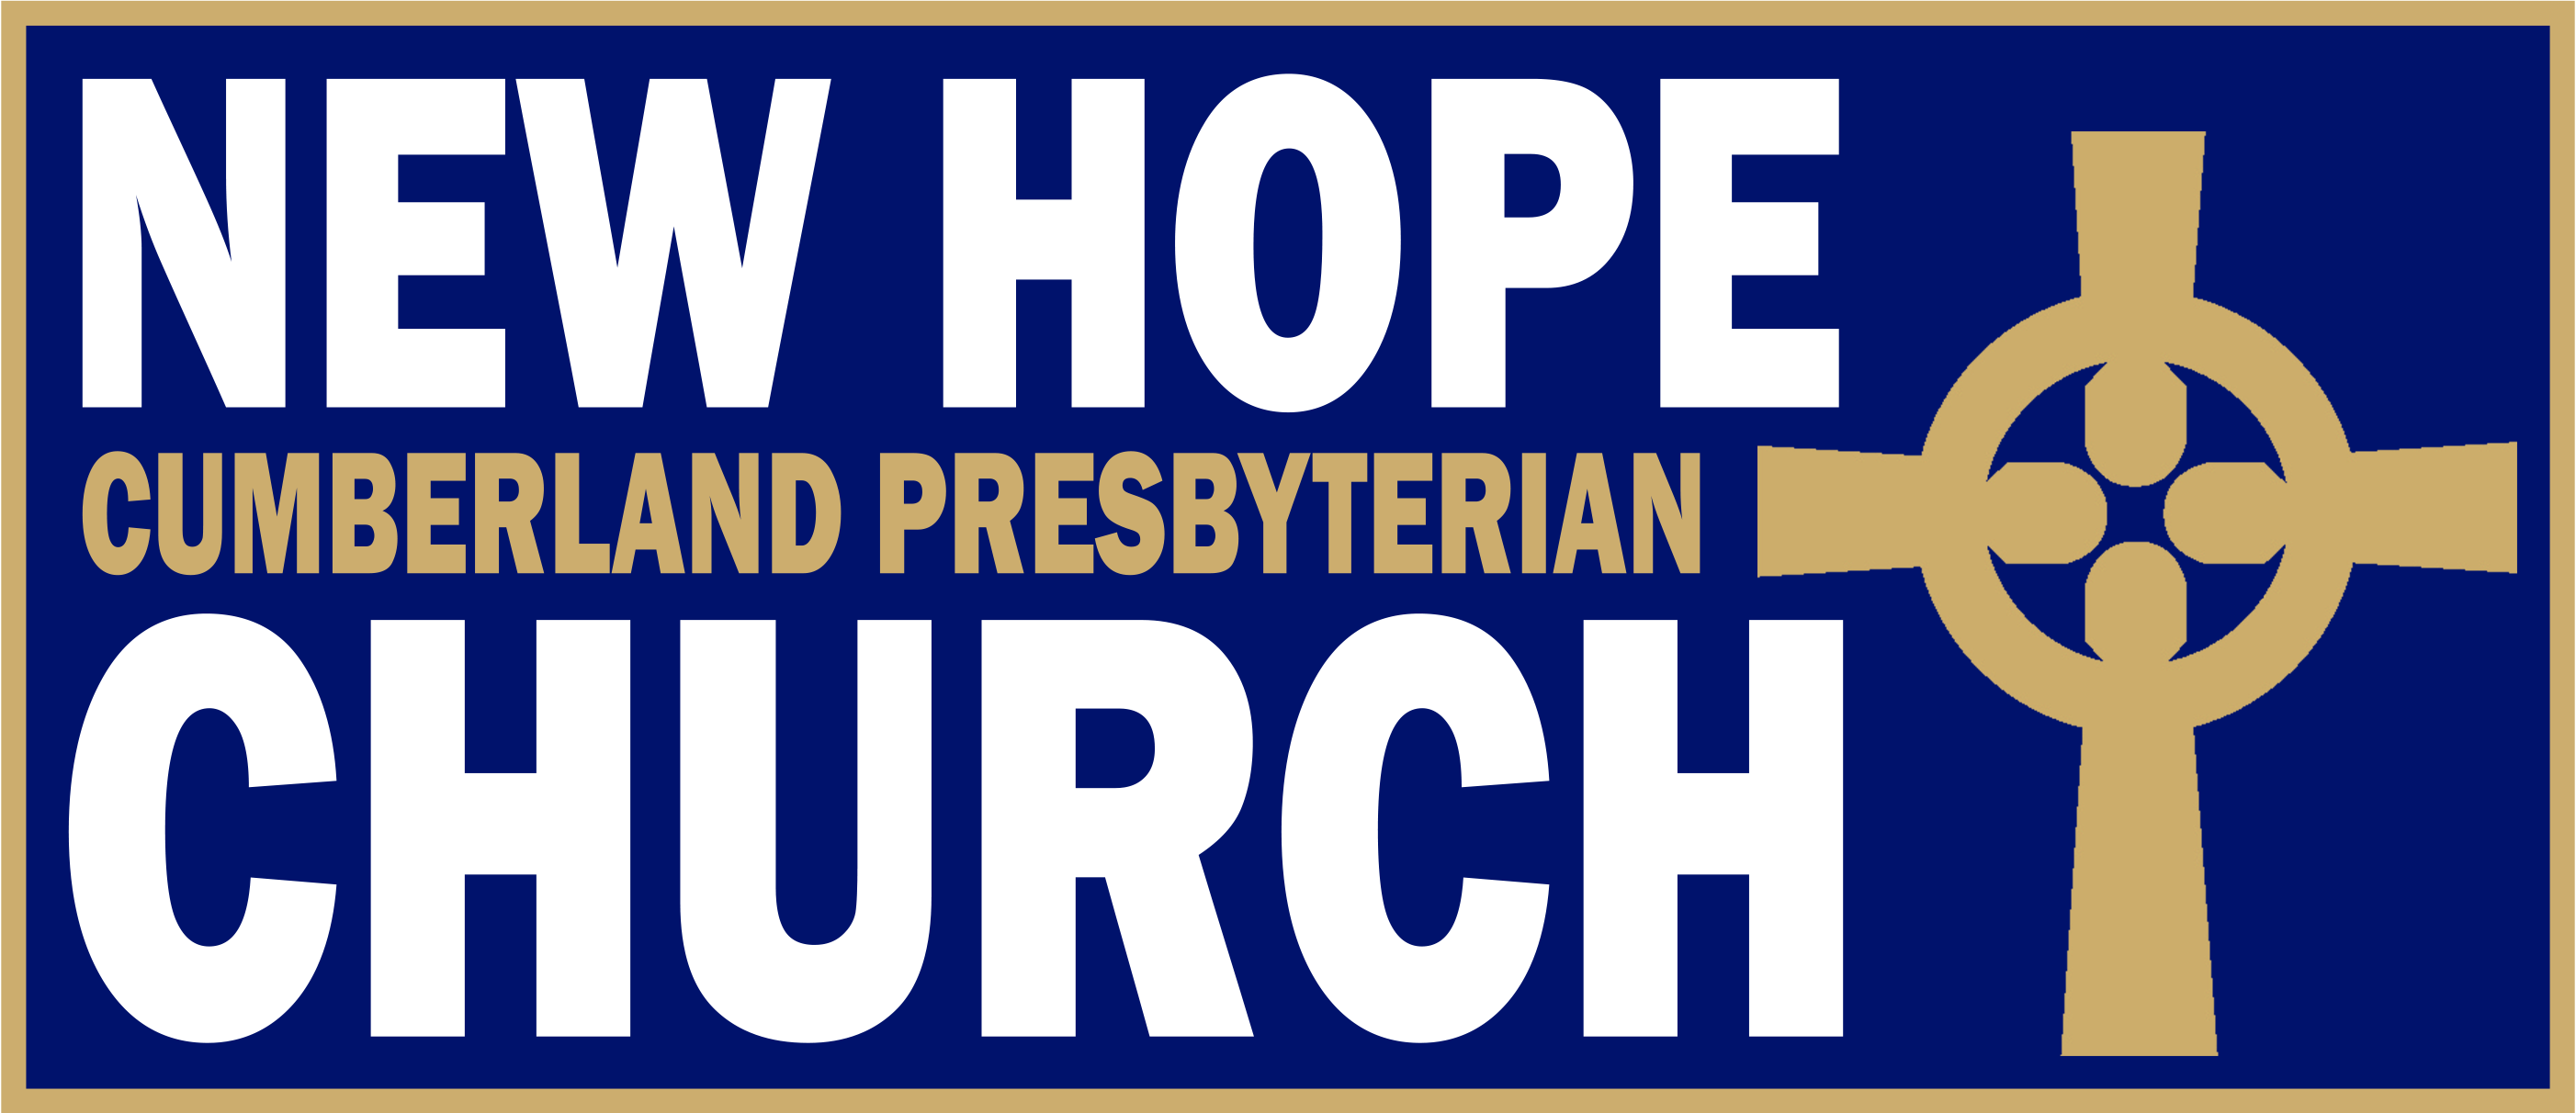 New Hope Cumberland Presbyterian Church